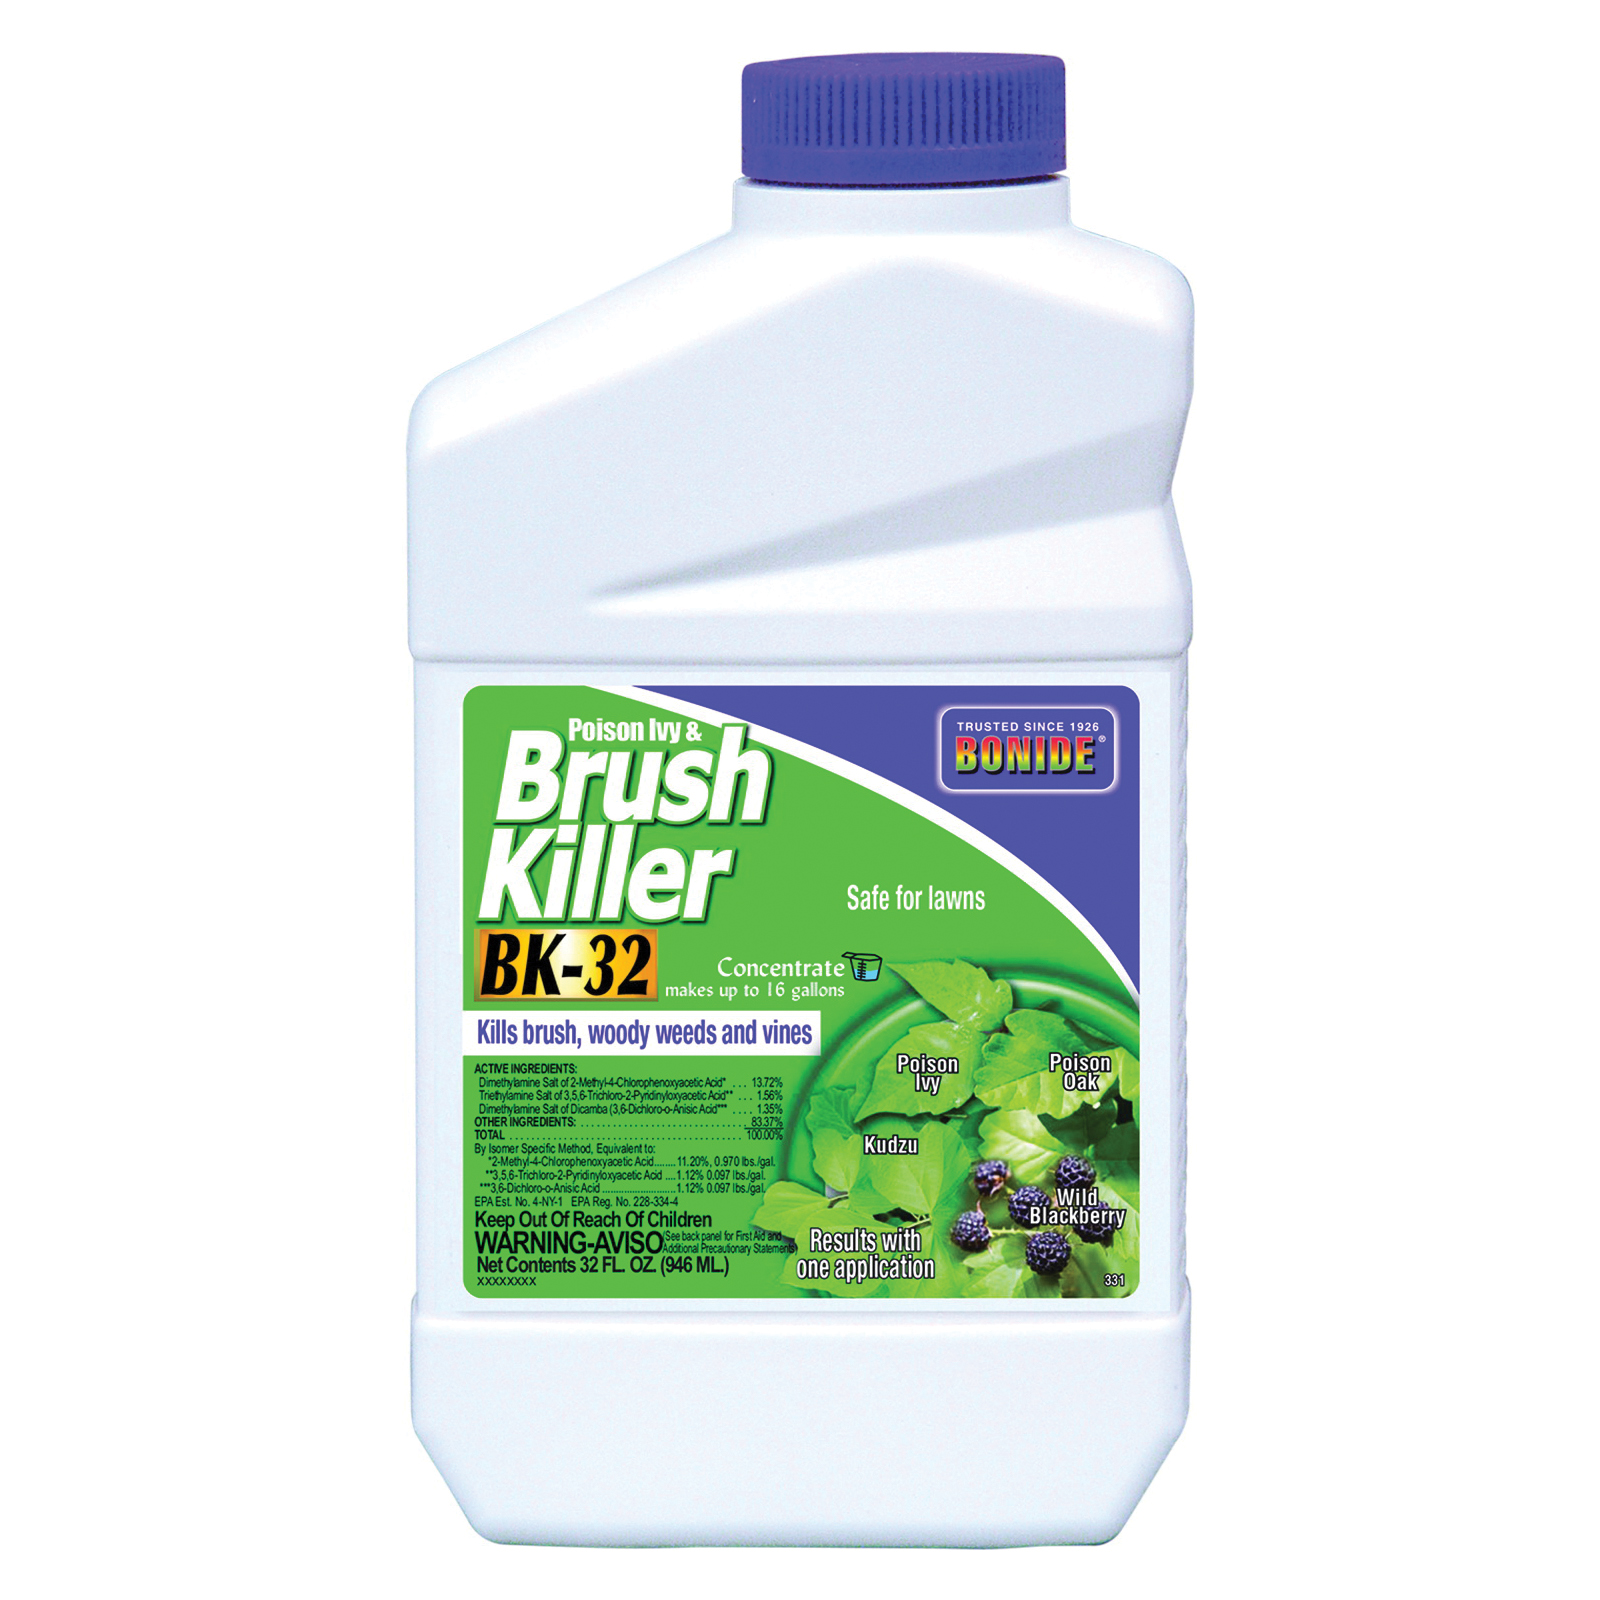 Picture of Bonide 331 Brush Killer, Liquid, Clear Yellow, 12 qt Package